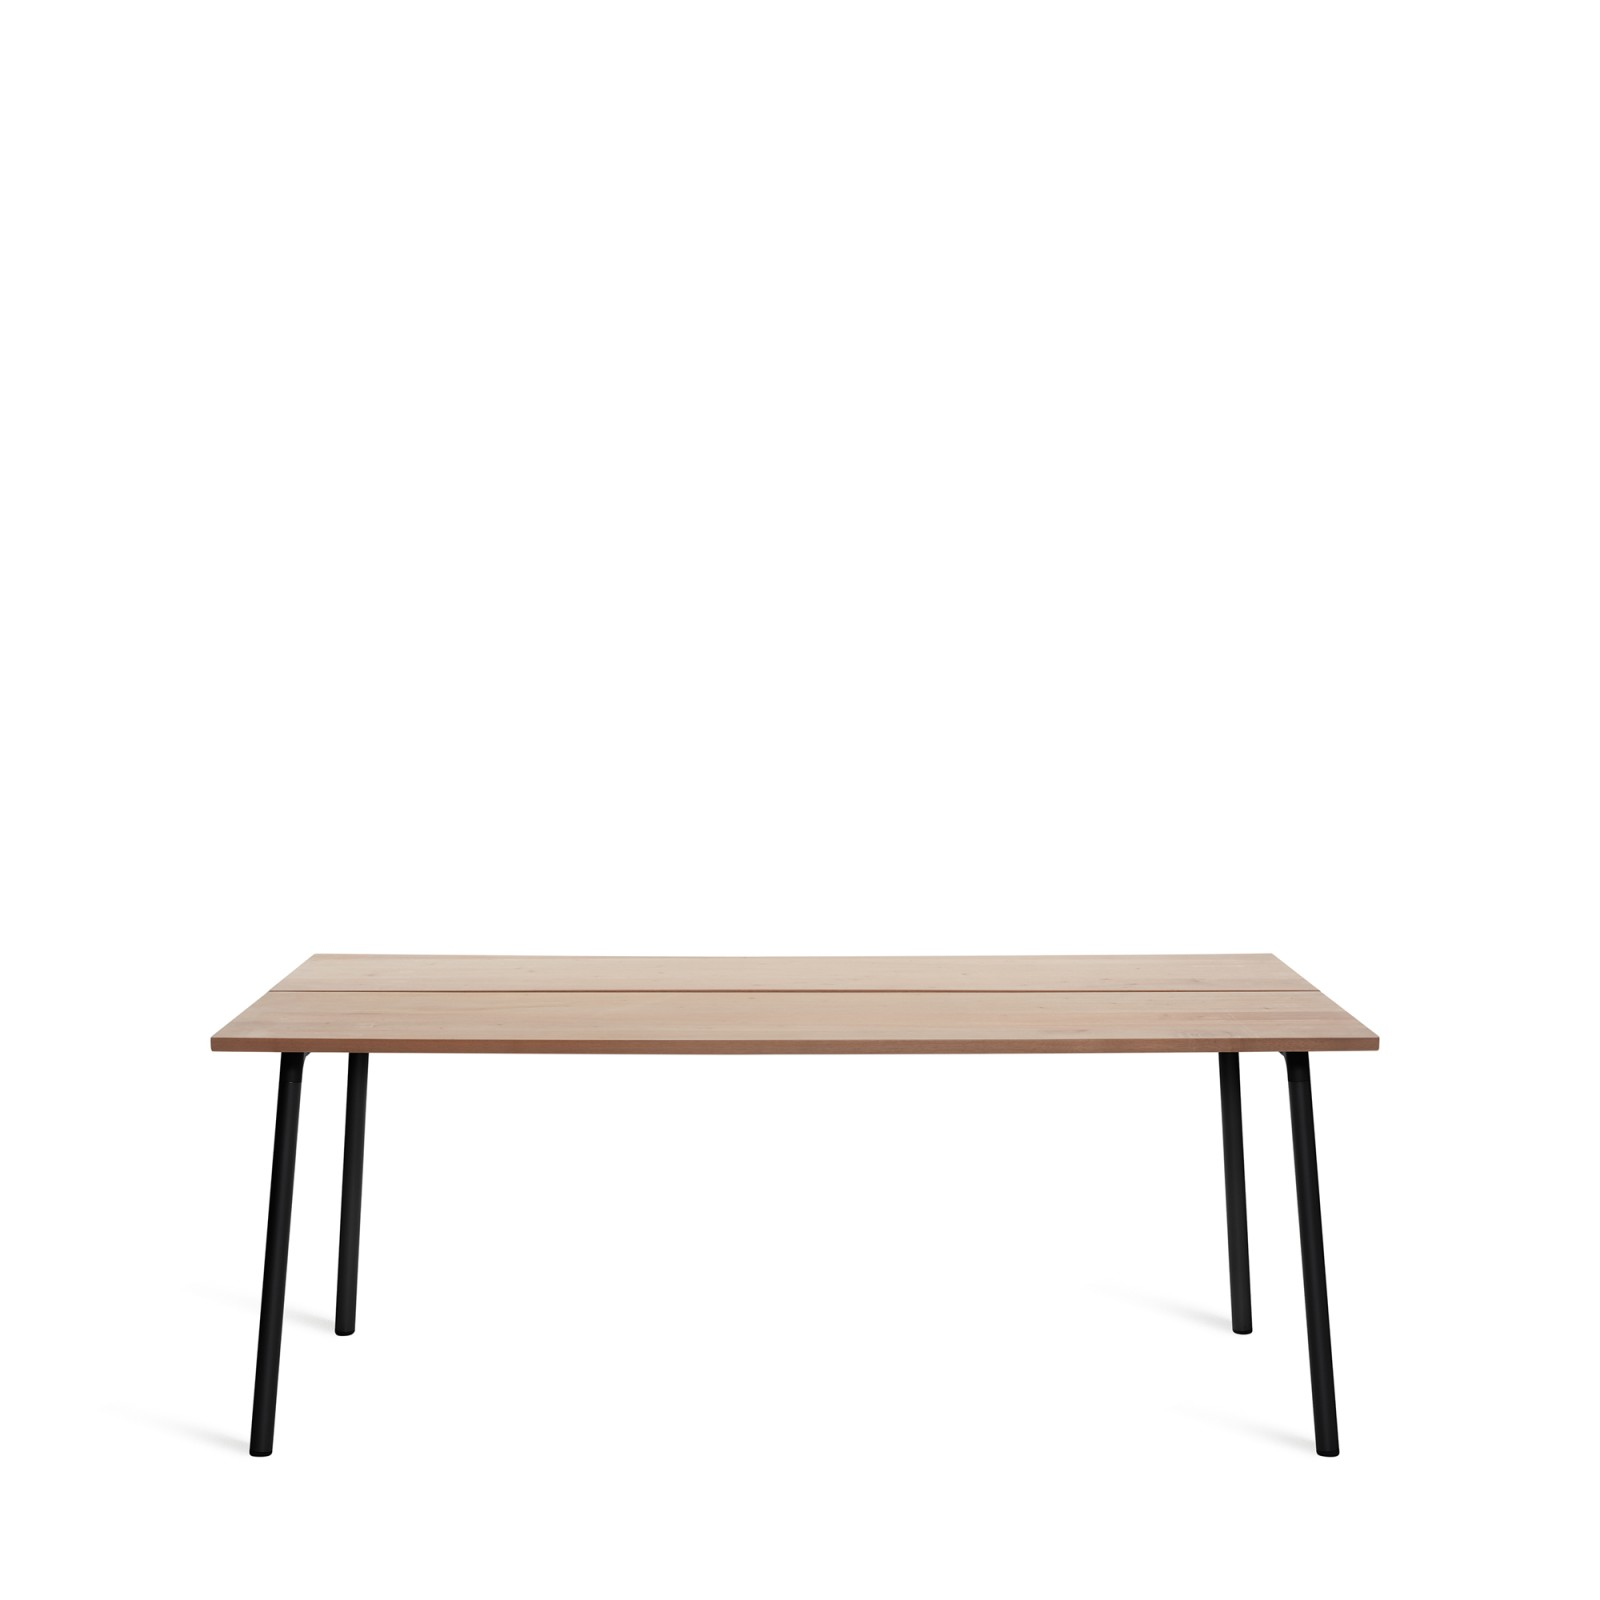 Run Dining Table Rectangular 183cm, Black Powder Coated, Cedar